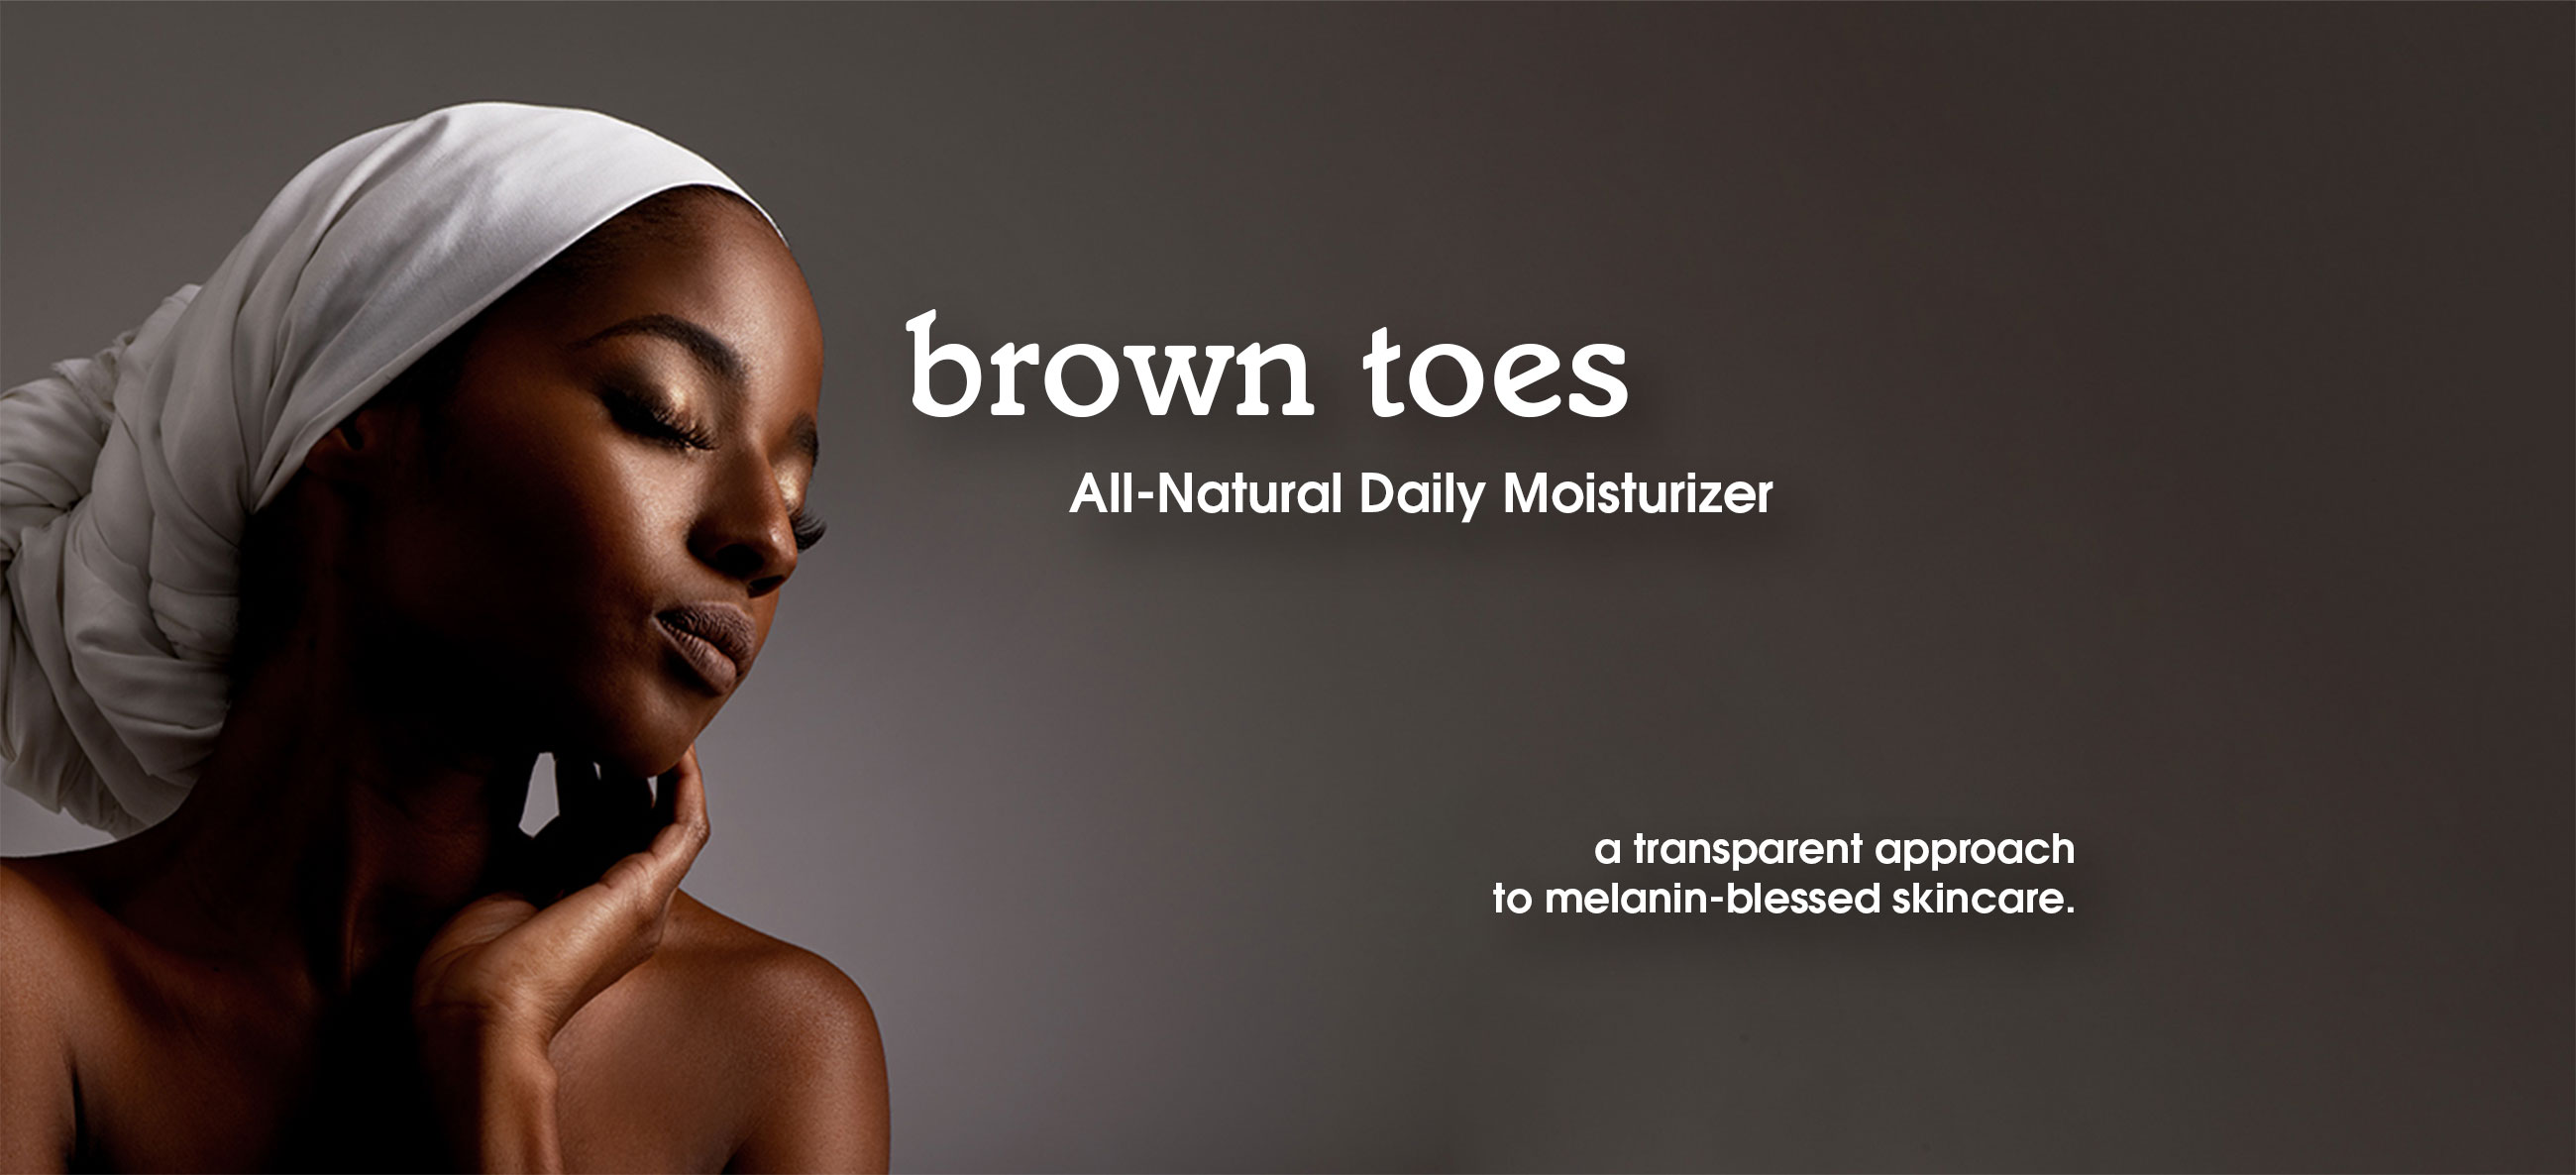 brown toes all-natural daily moisturizer